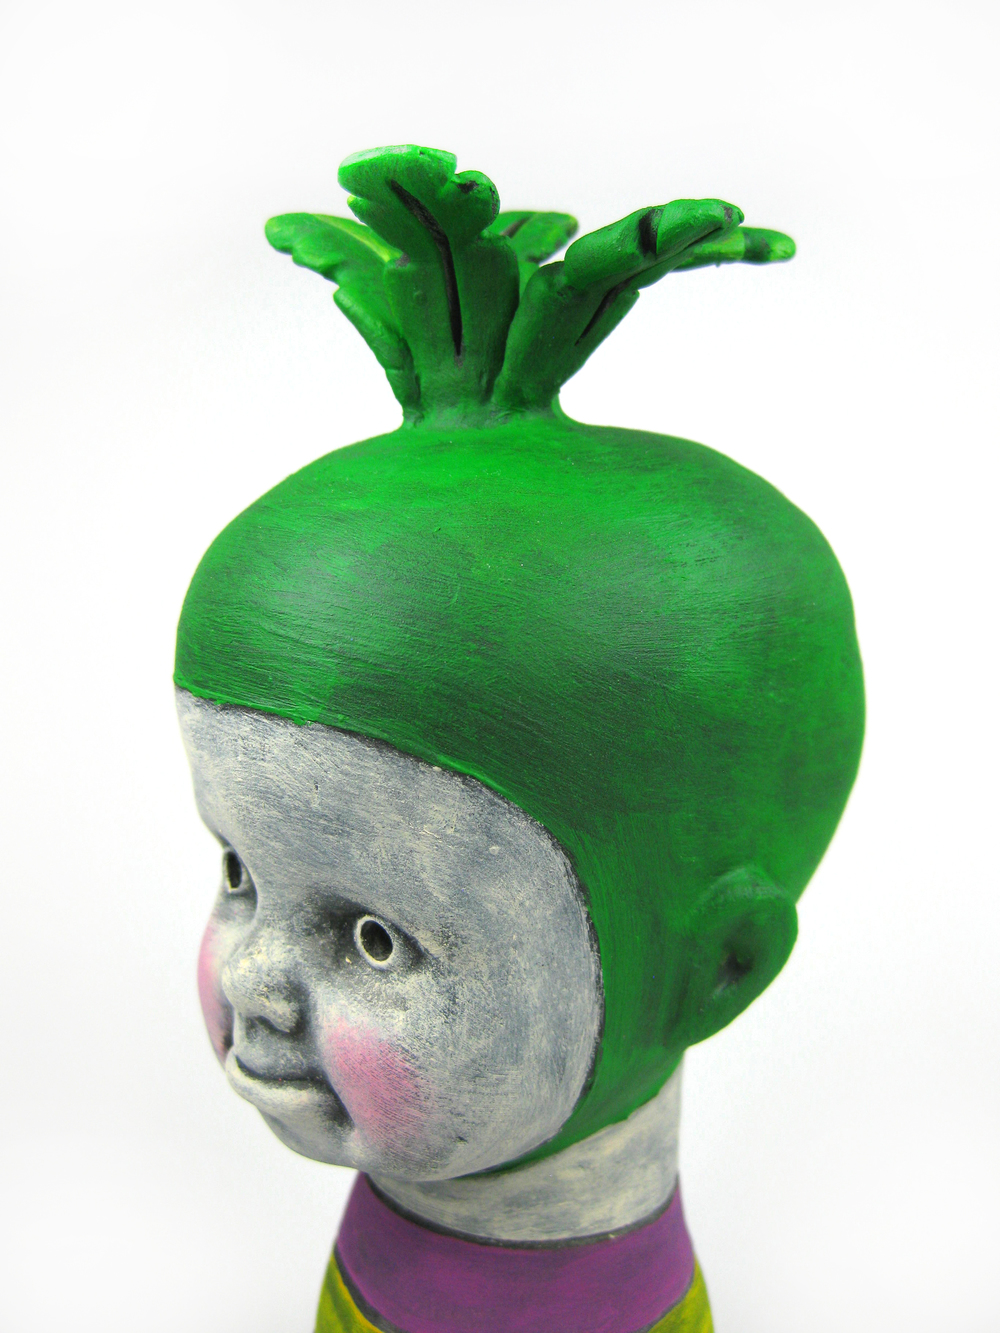 Lettuce Head (Head Detail)